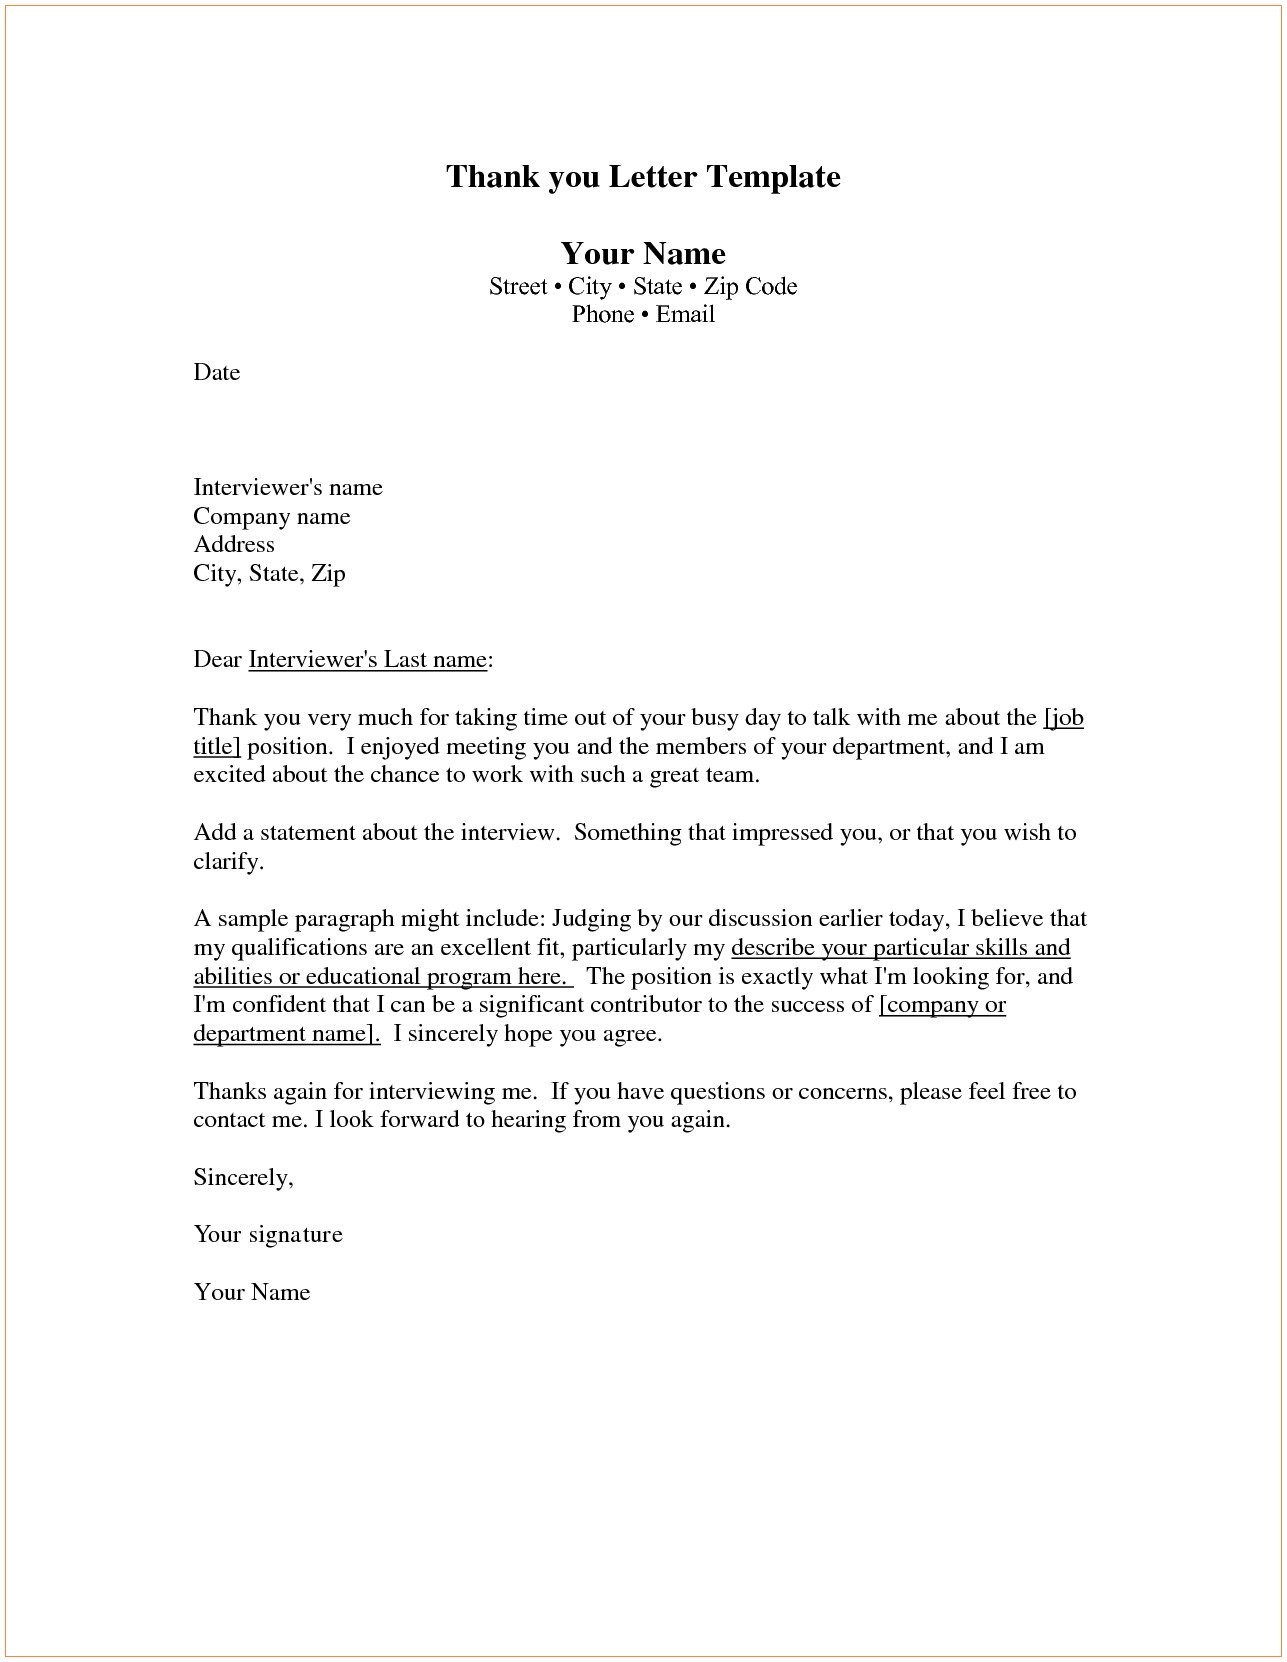 Thank You Letter Template - Thank You for Your Business Letter Template Save Http Jobsearch